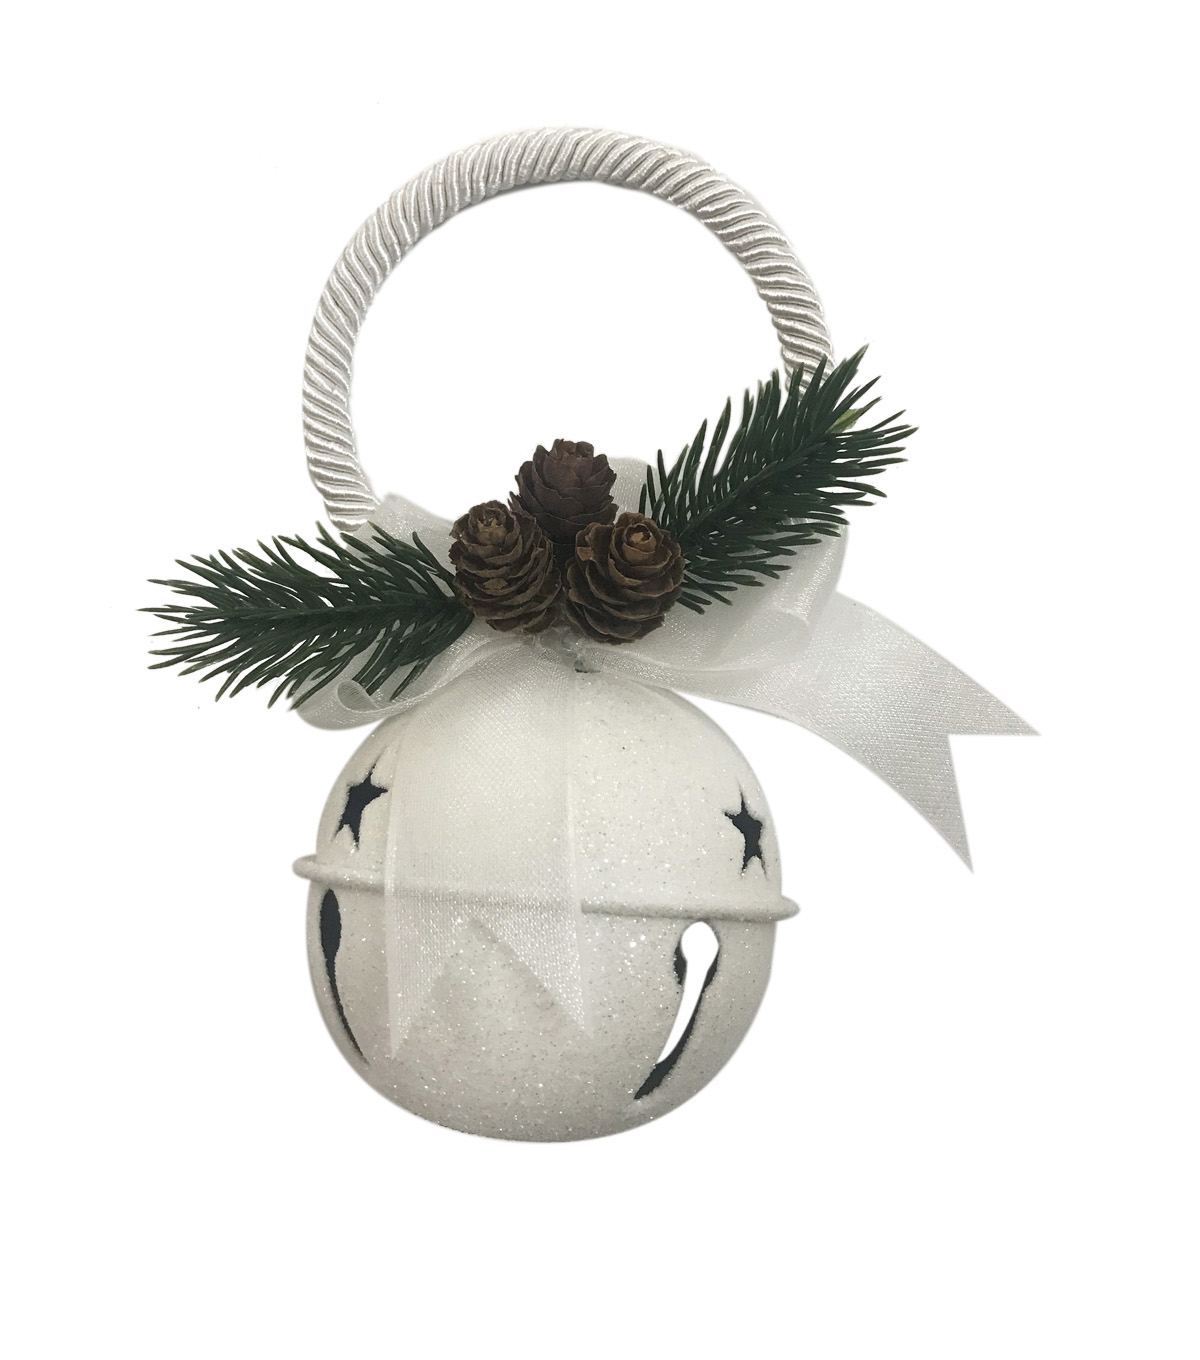 Handmade Holiday Christmas Glitter Jingle Bell Door Knob Hanger-White